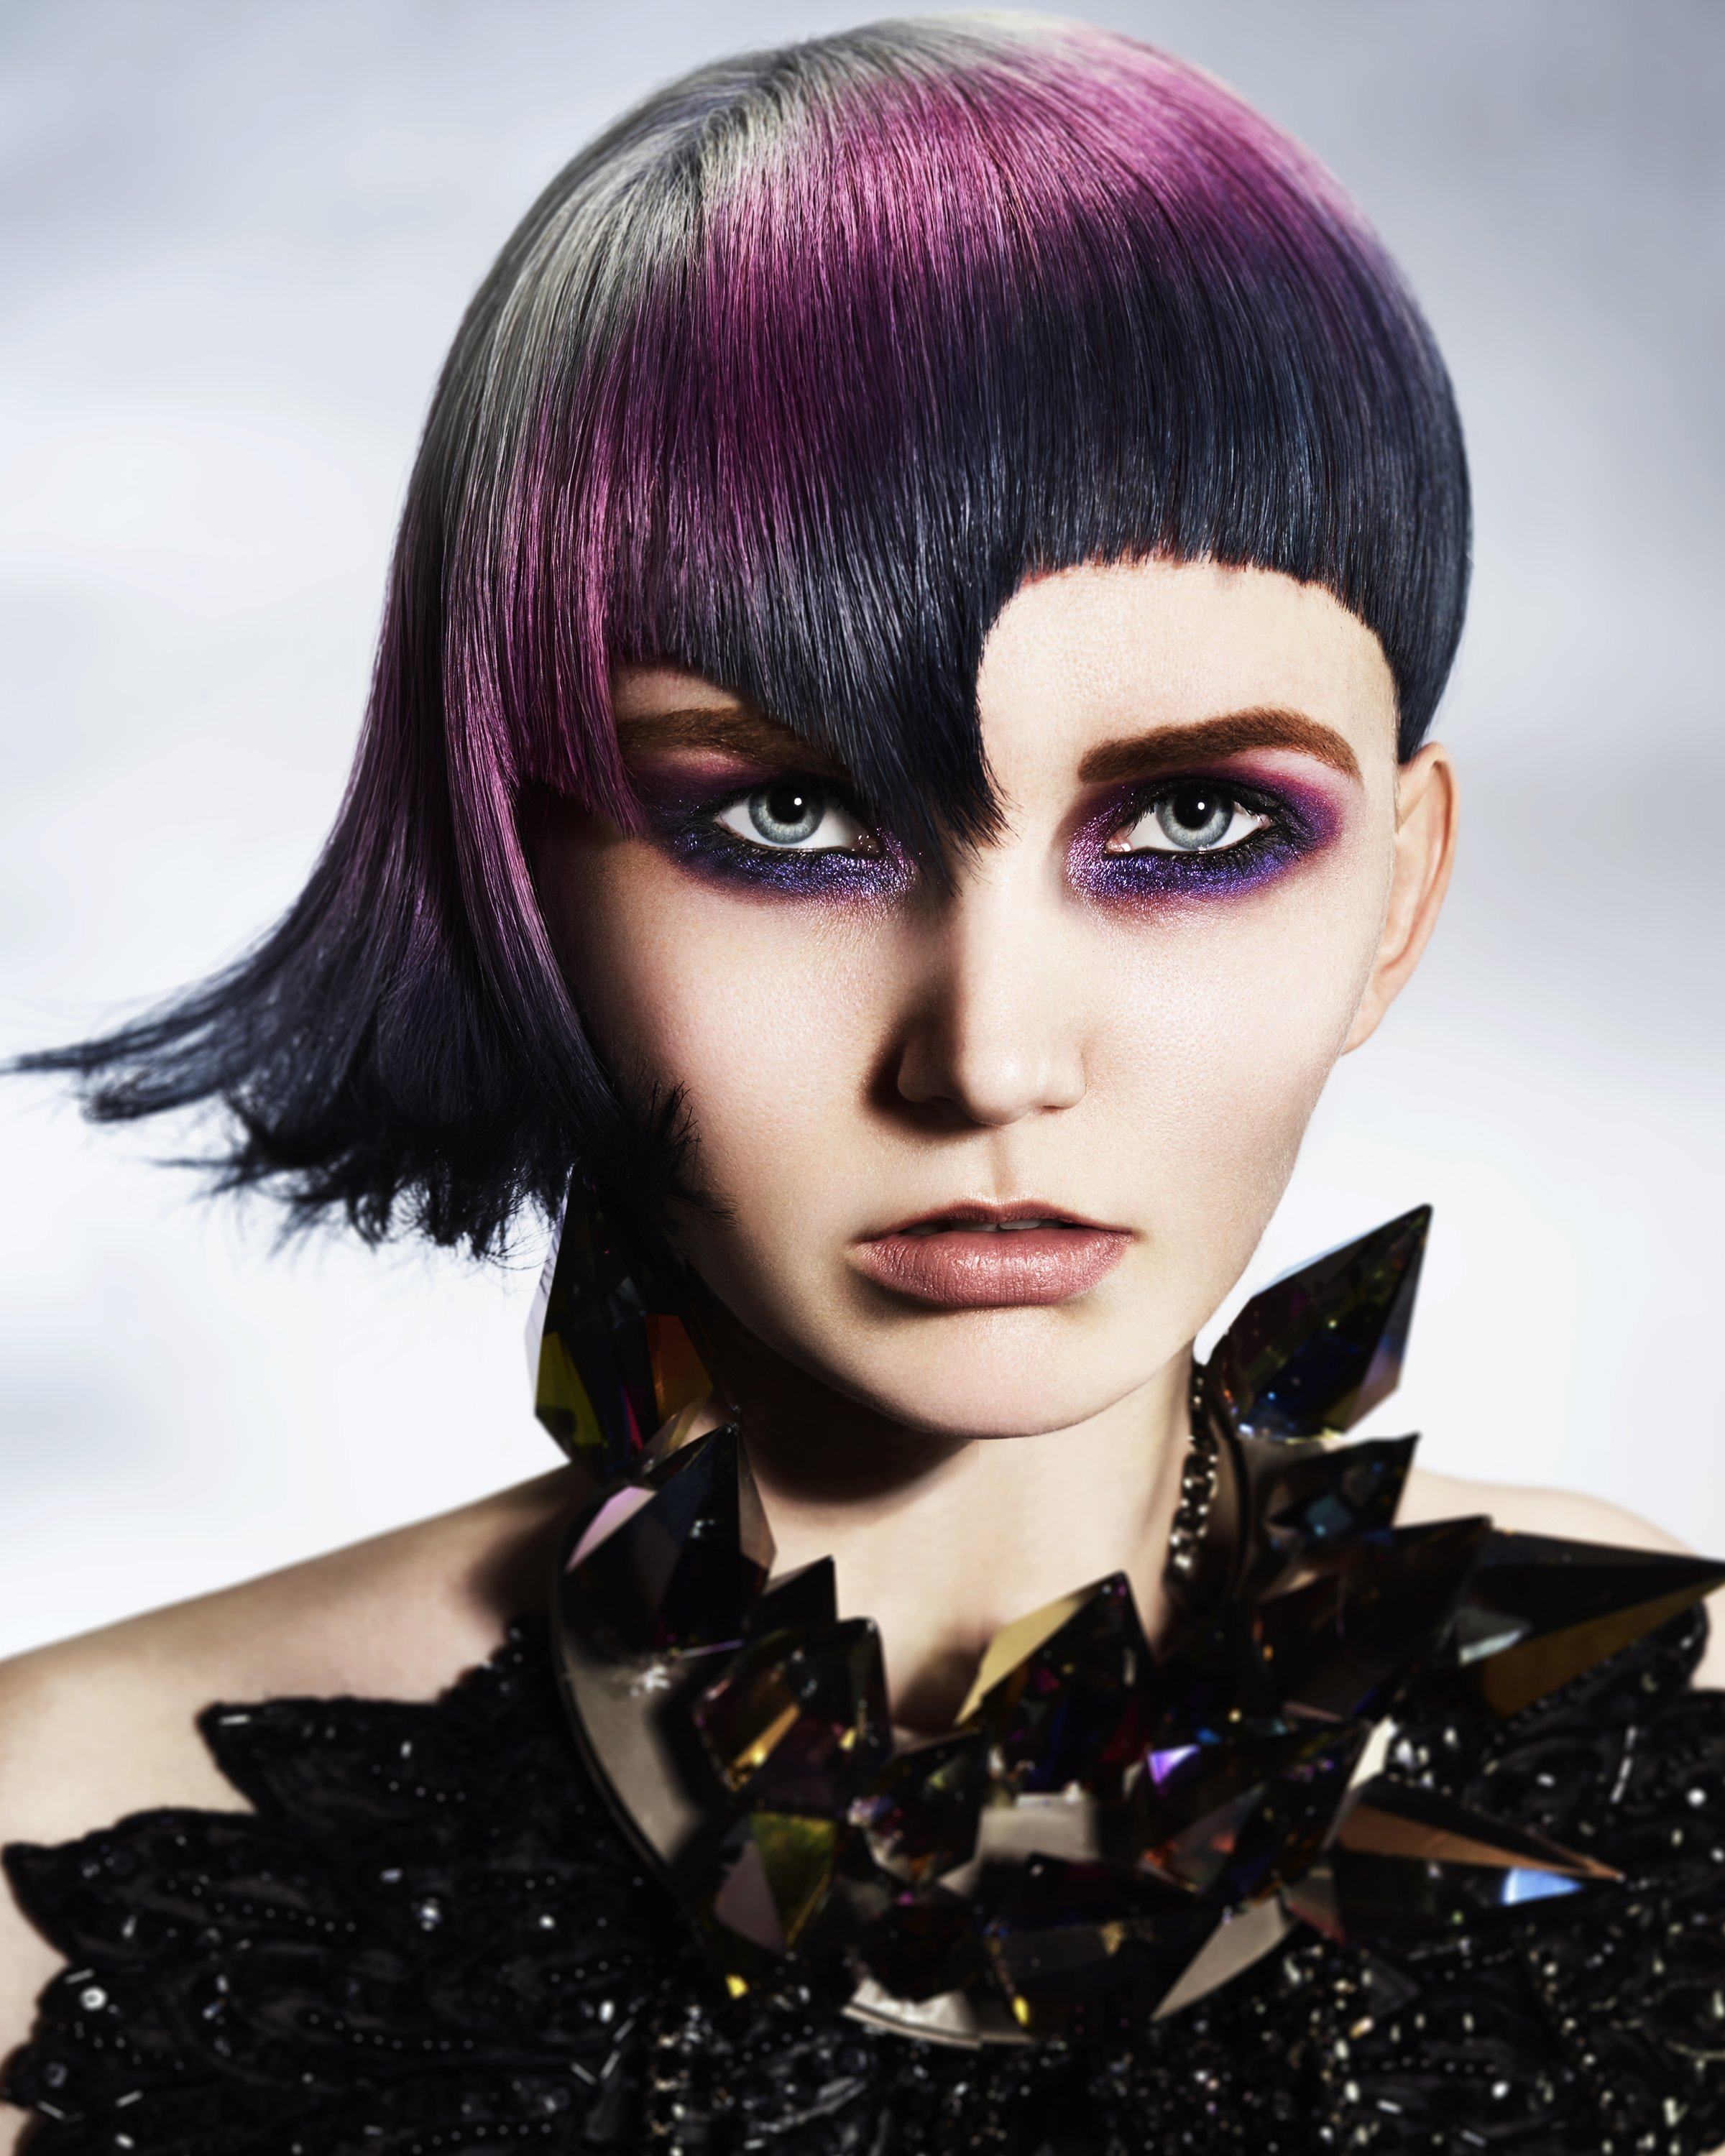 2018 NAHA Finalists: Hair Color